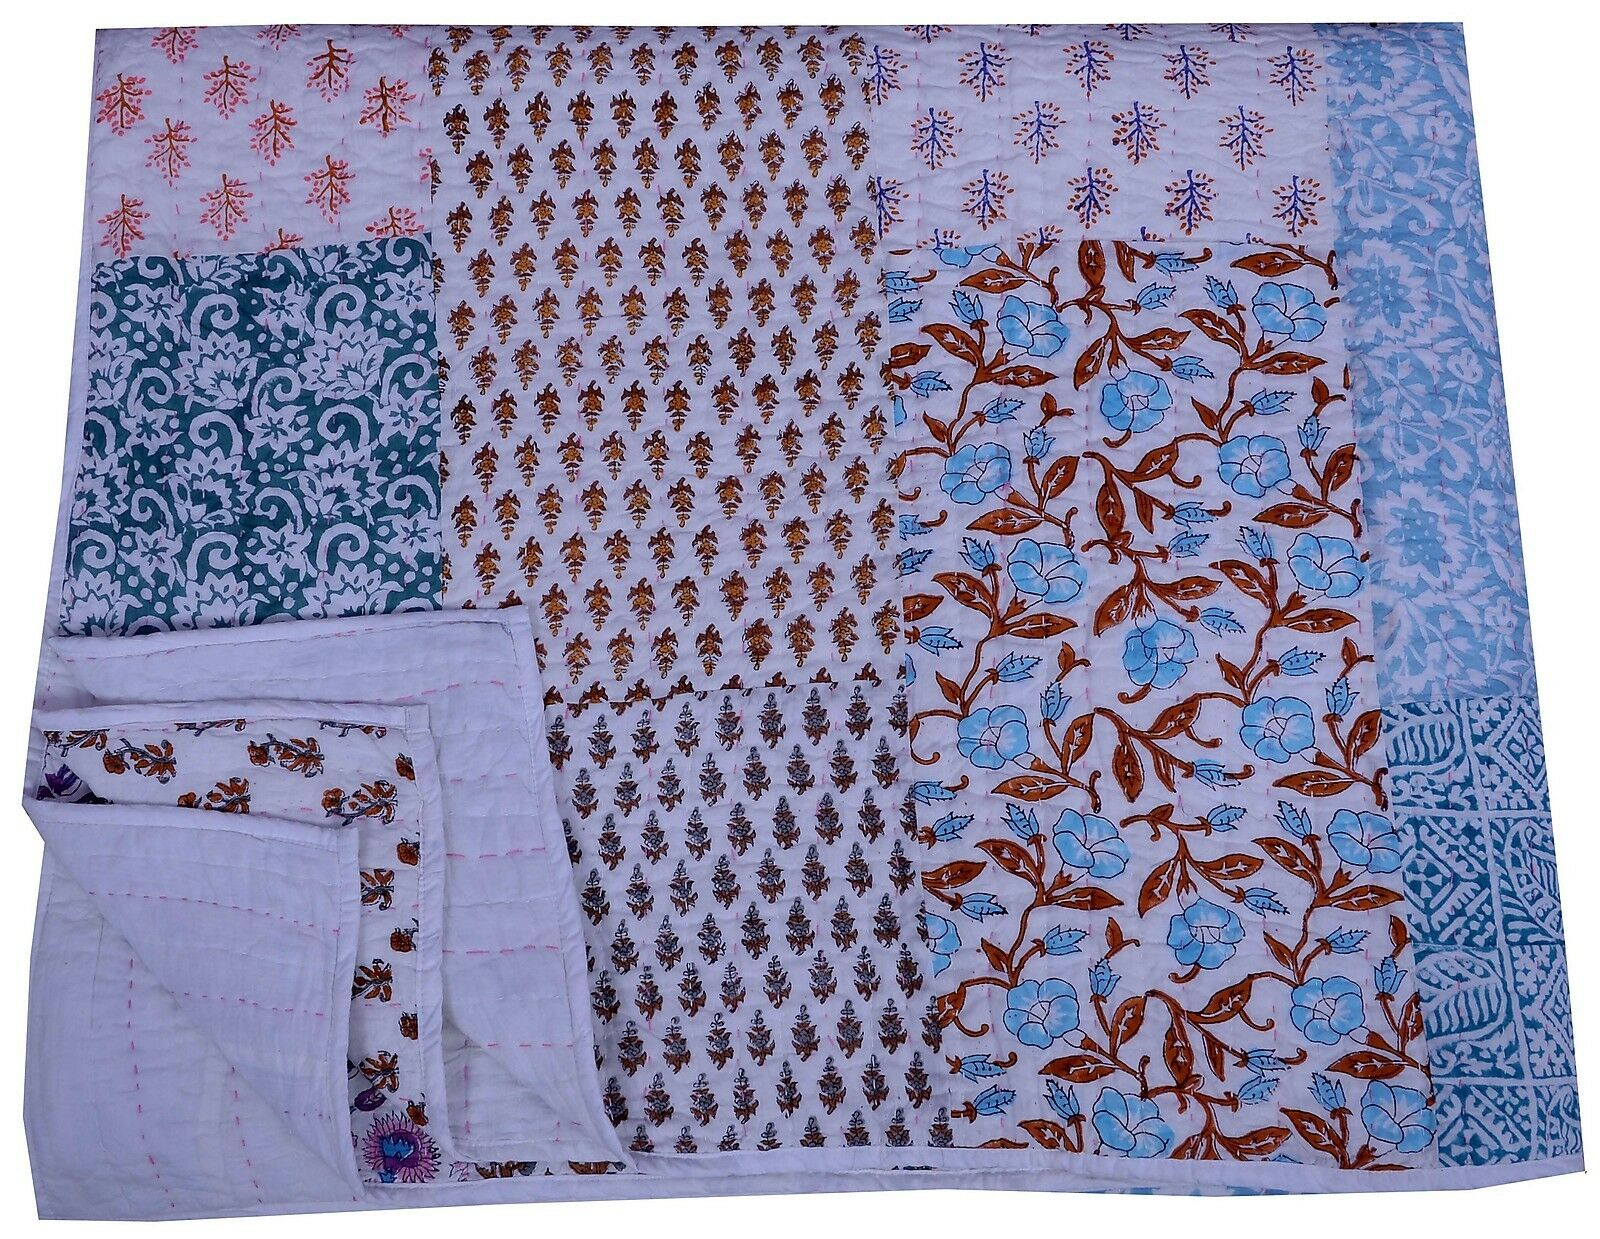 Indian Floral Patchwork Kantha Quilt With Cotton Filling Comforter Blanket Throw